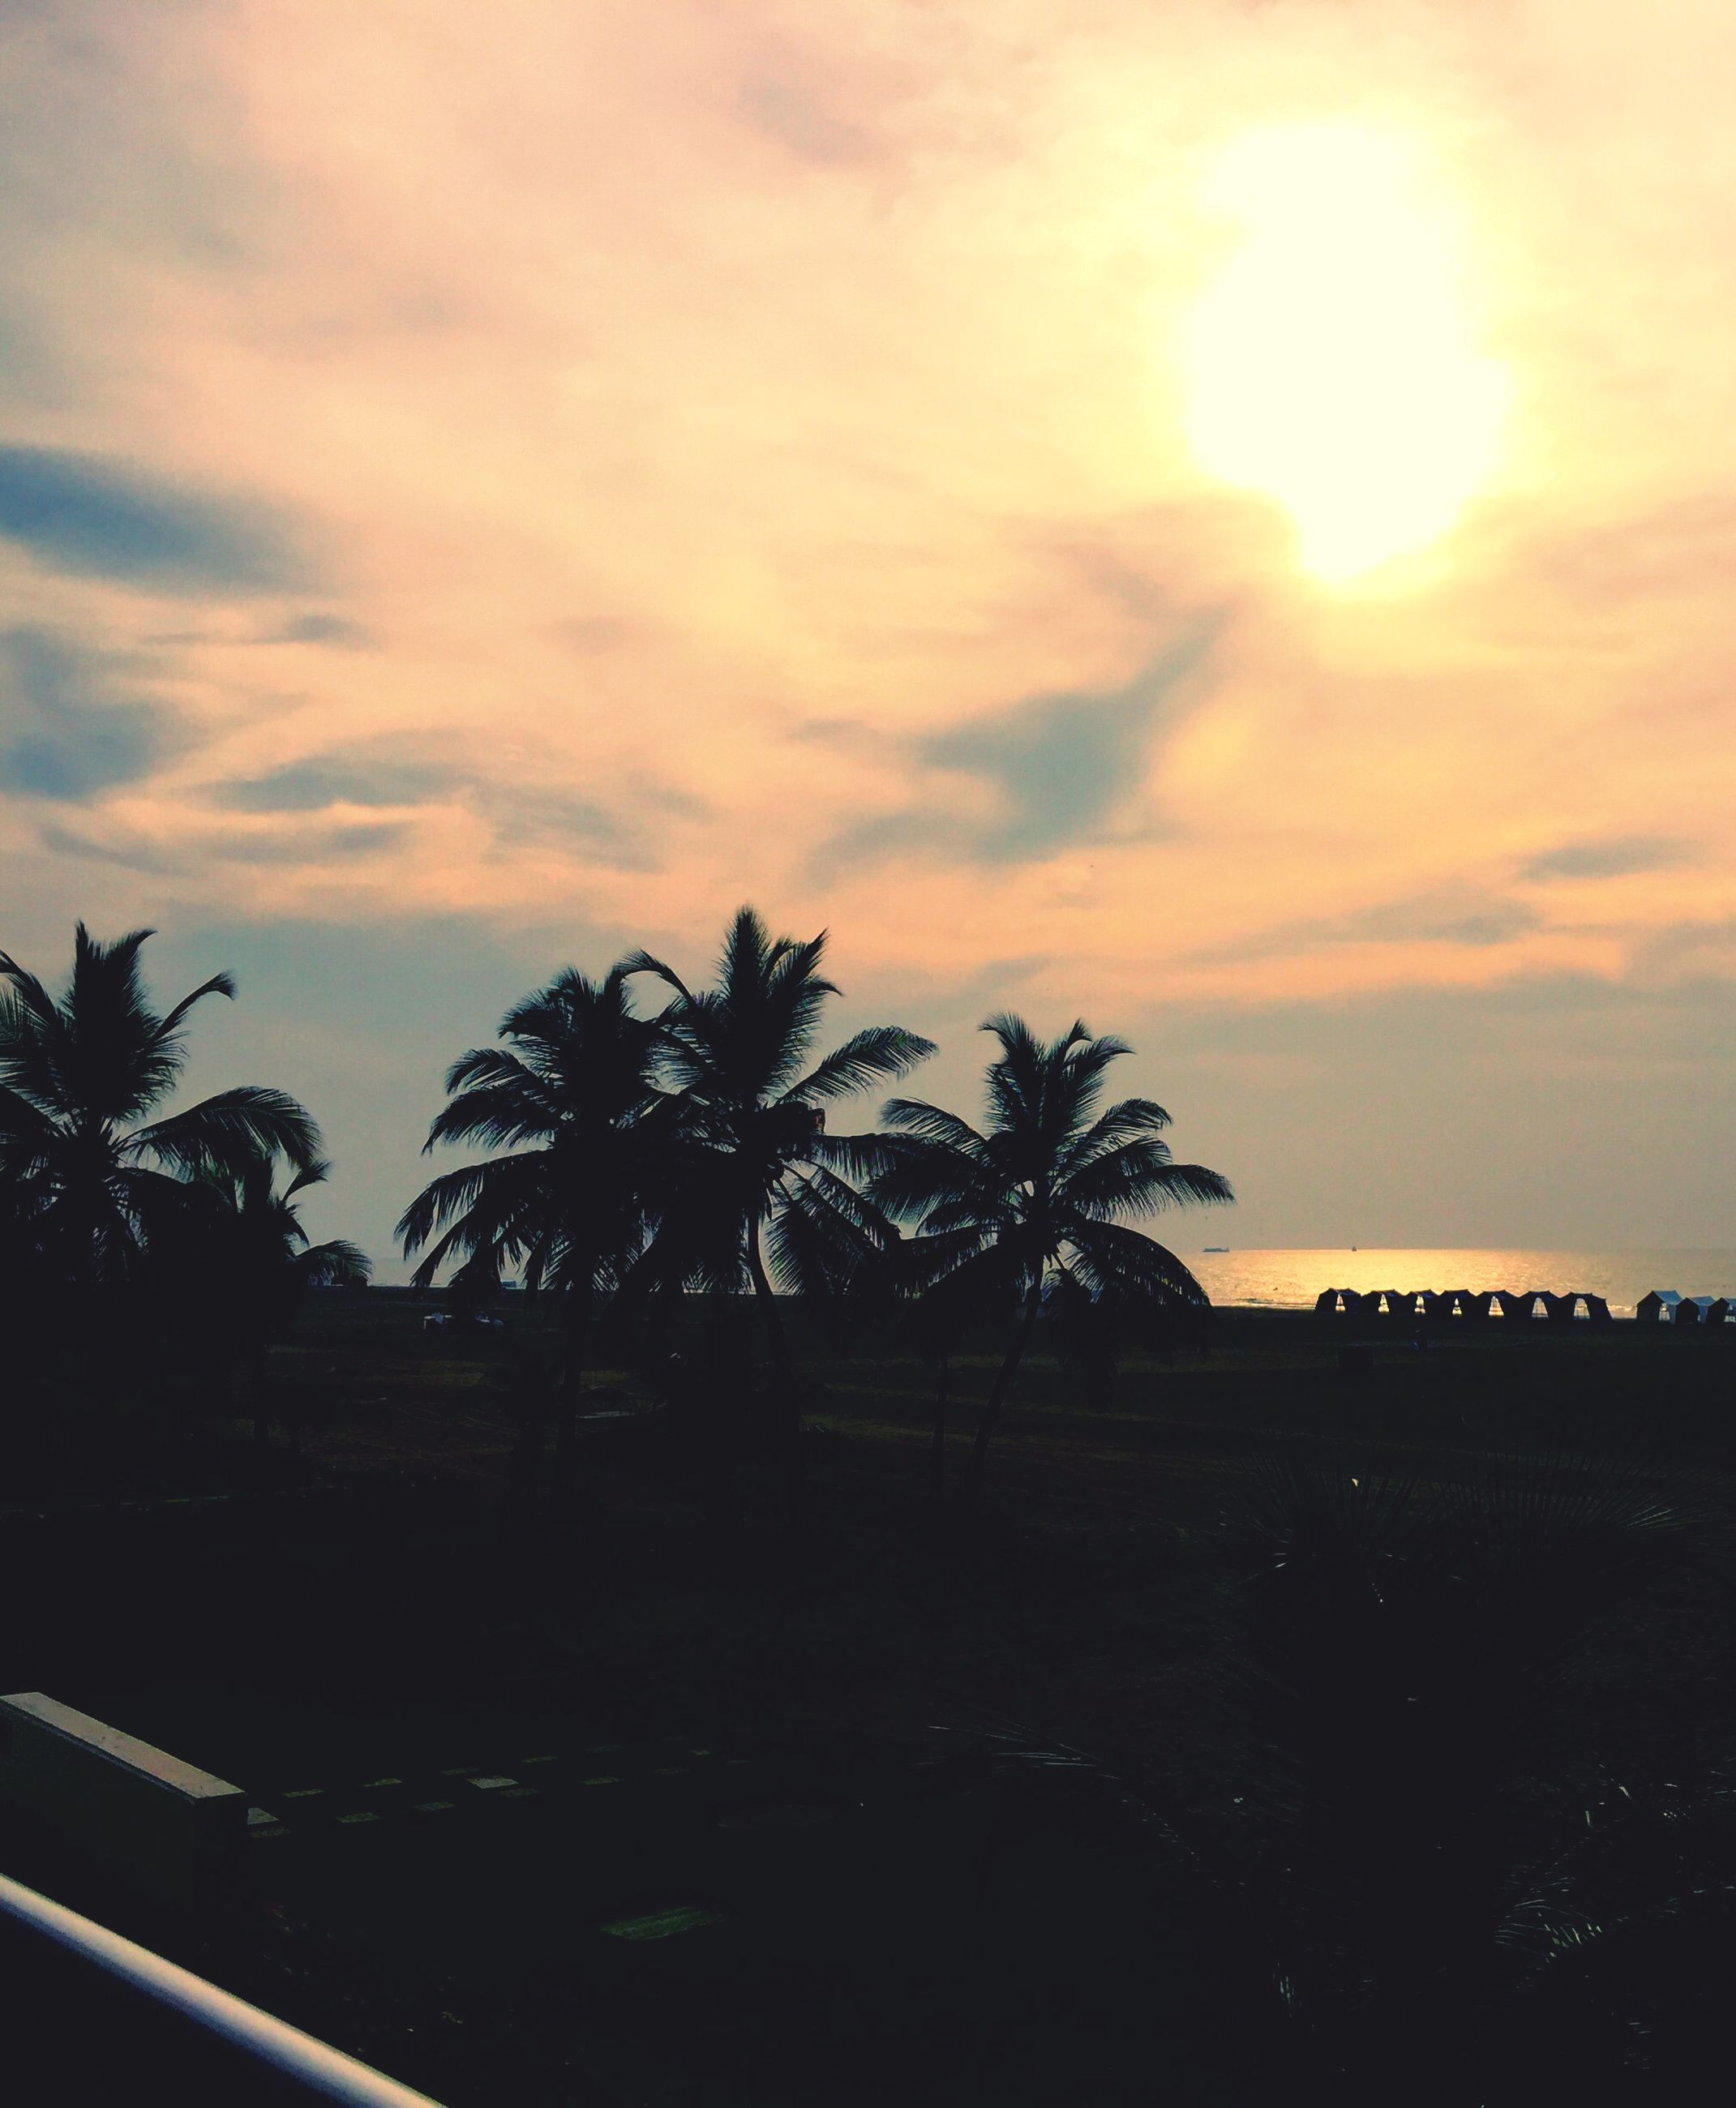 sunset, palm tree, sky, silhouette, tree, cloud - sky, built structure, architecture, building exterior, sun, nature, beauty in nature, tranquility, scenics, growth, cloud, tranquil scene, cloudy, sunlight, low angle view